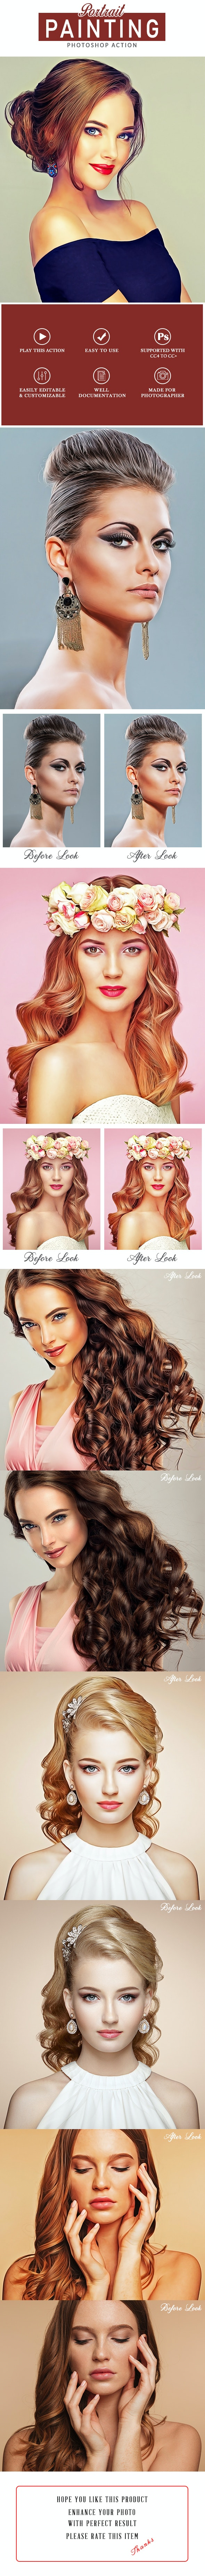 Portrait Painting Photoshop Action - Photo Effects Actions